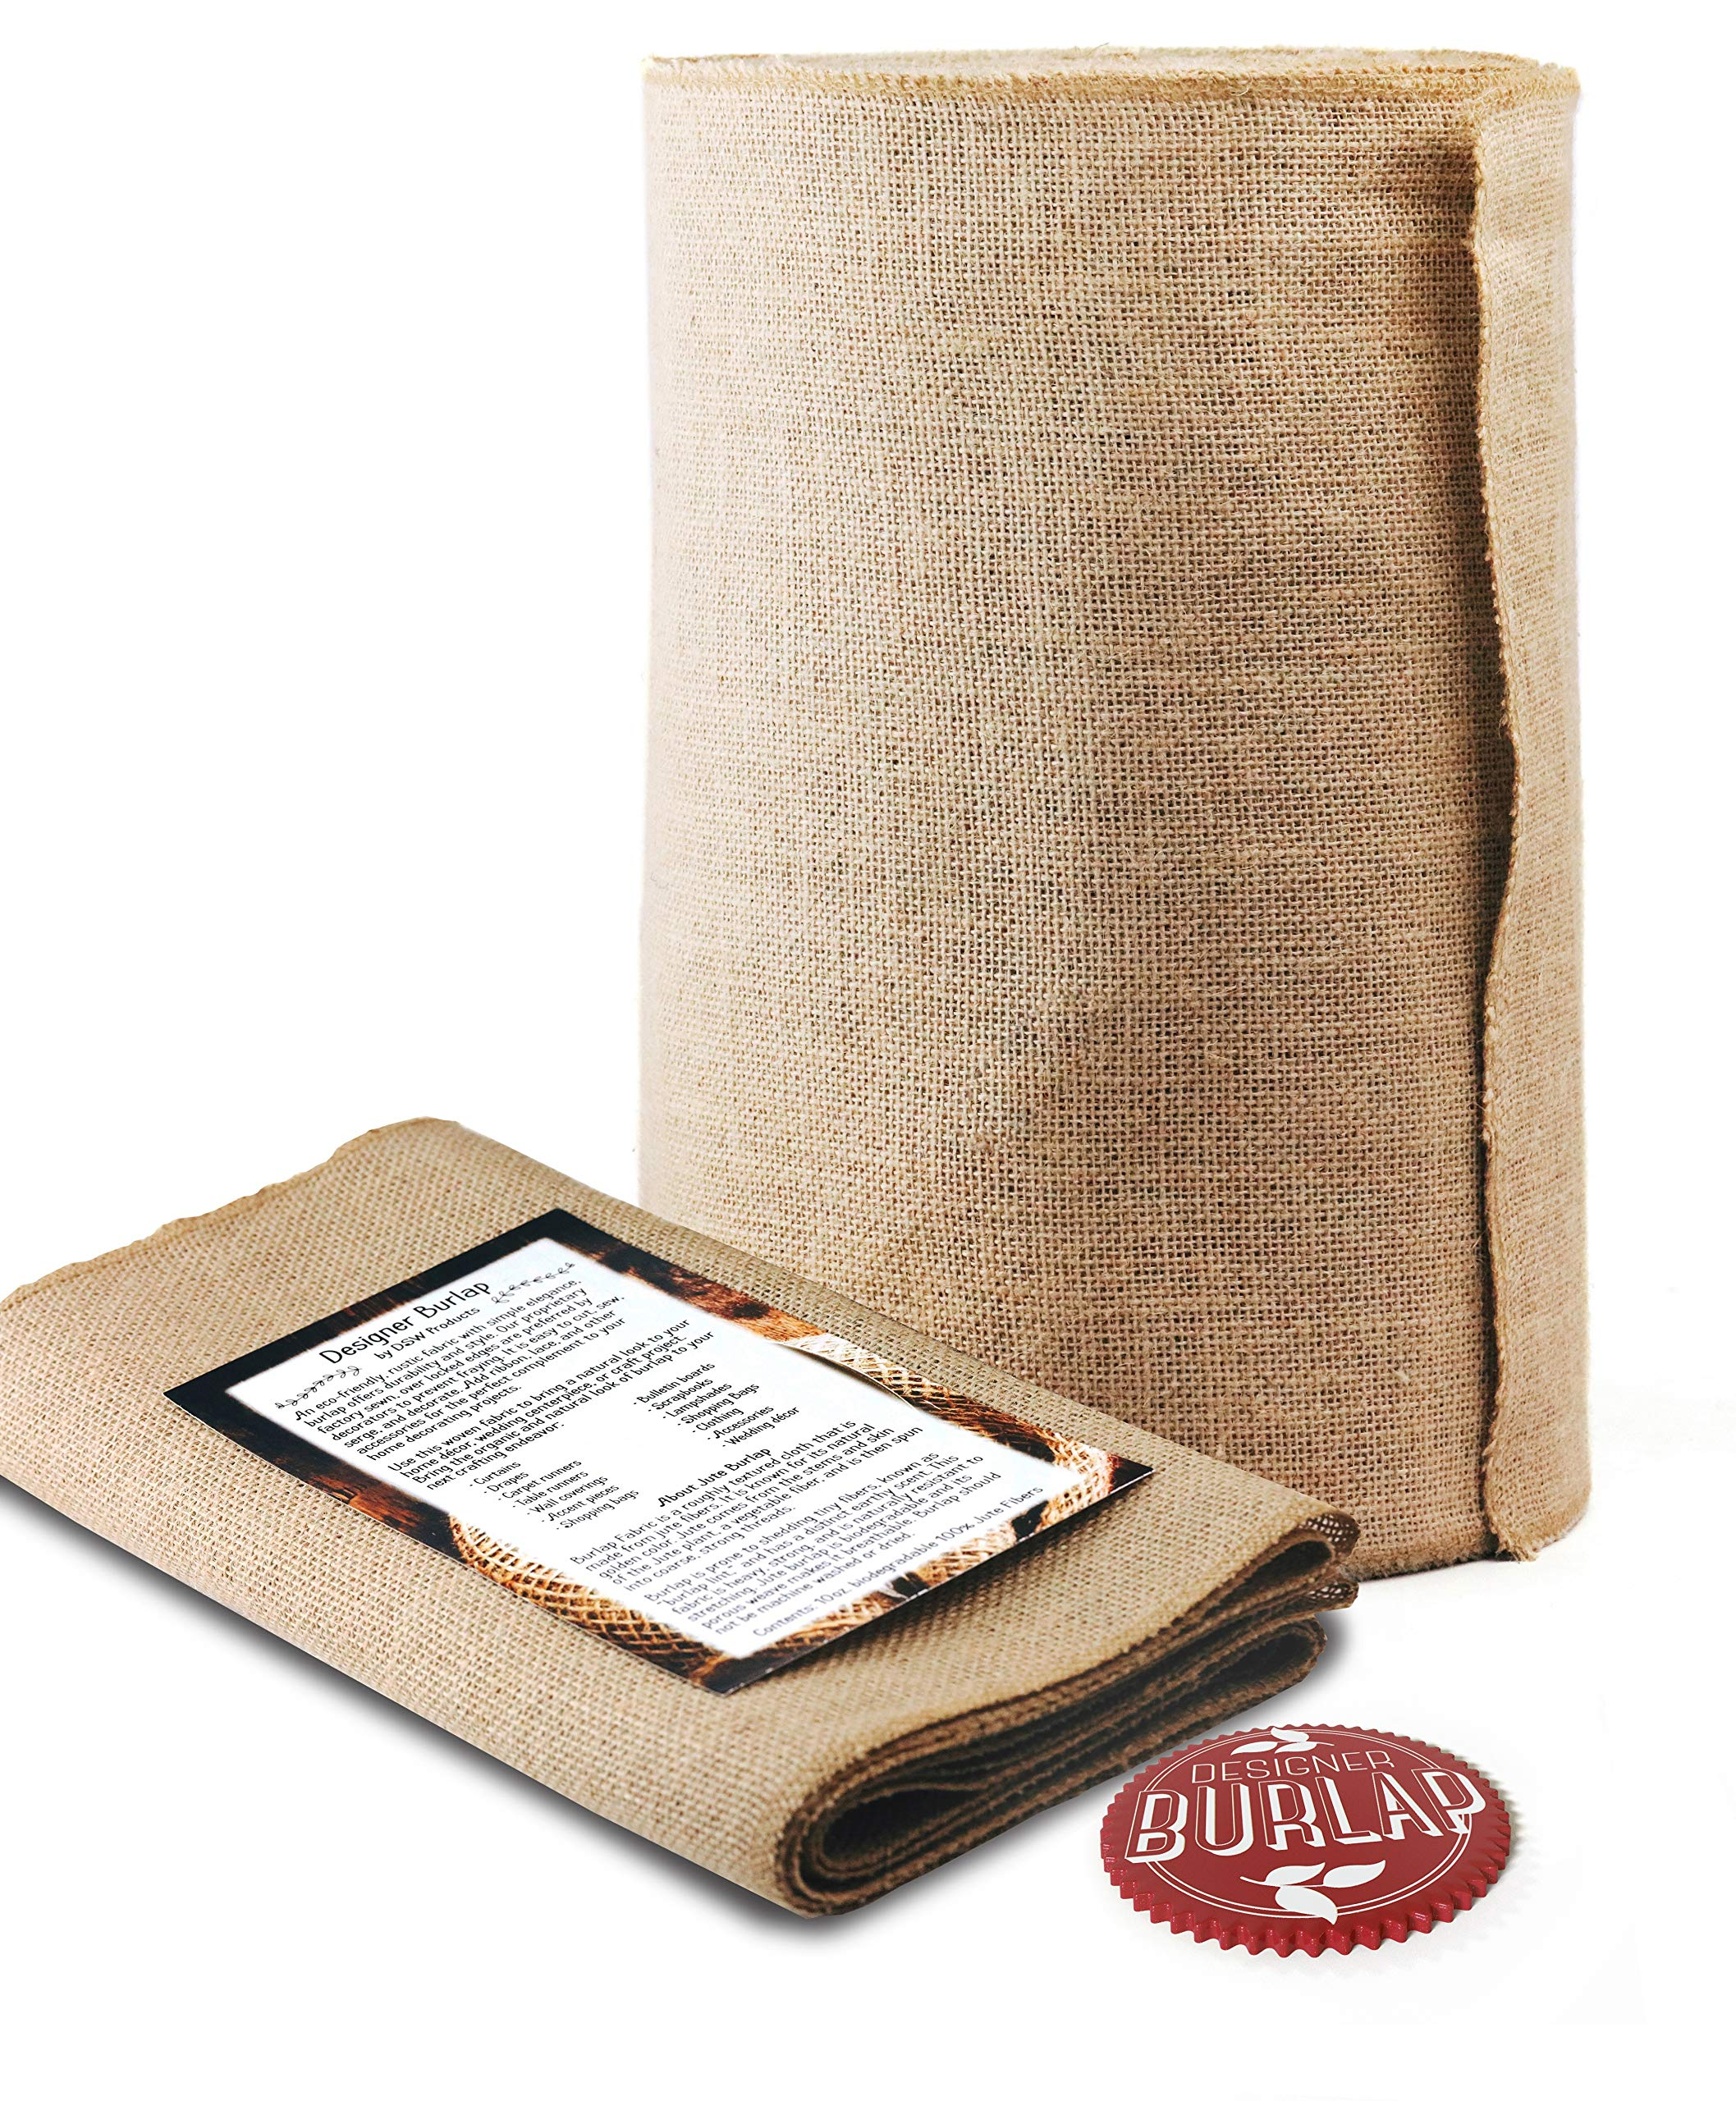 Burlap Table Runner - 14 Inch Wide x 50 Yards Long. No-Fray with Finished Edges. Burlap Fabric Roll Perfect for Weddings, Table-Runners, Decorations and Crafts. Decorate Without Mess by Designer Burlap